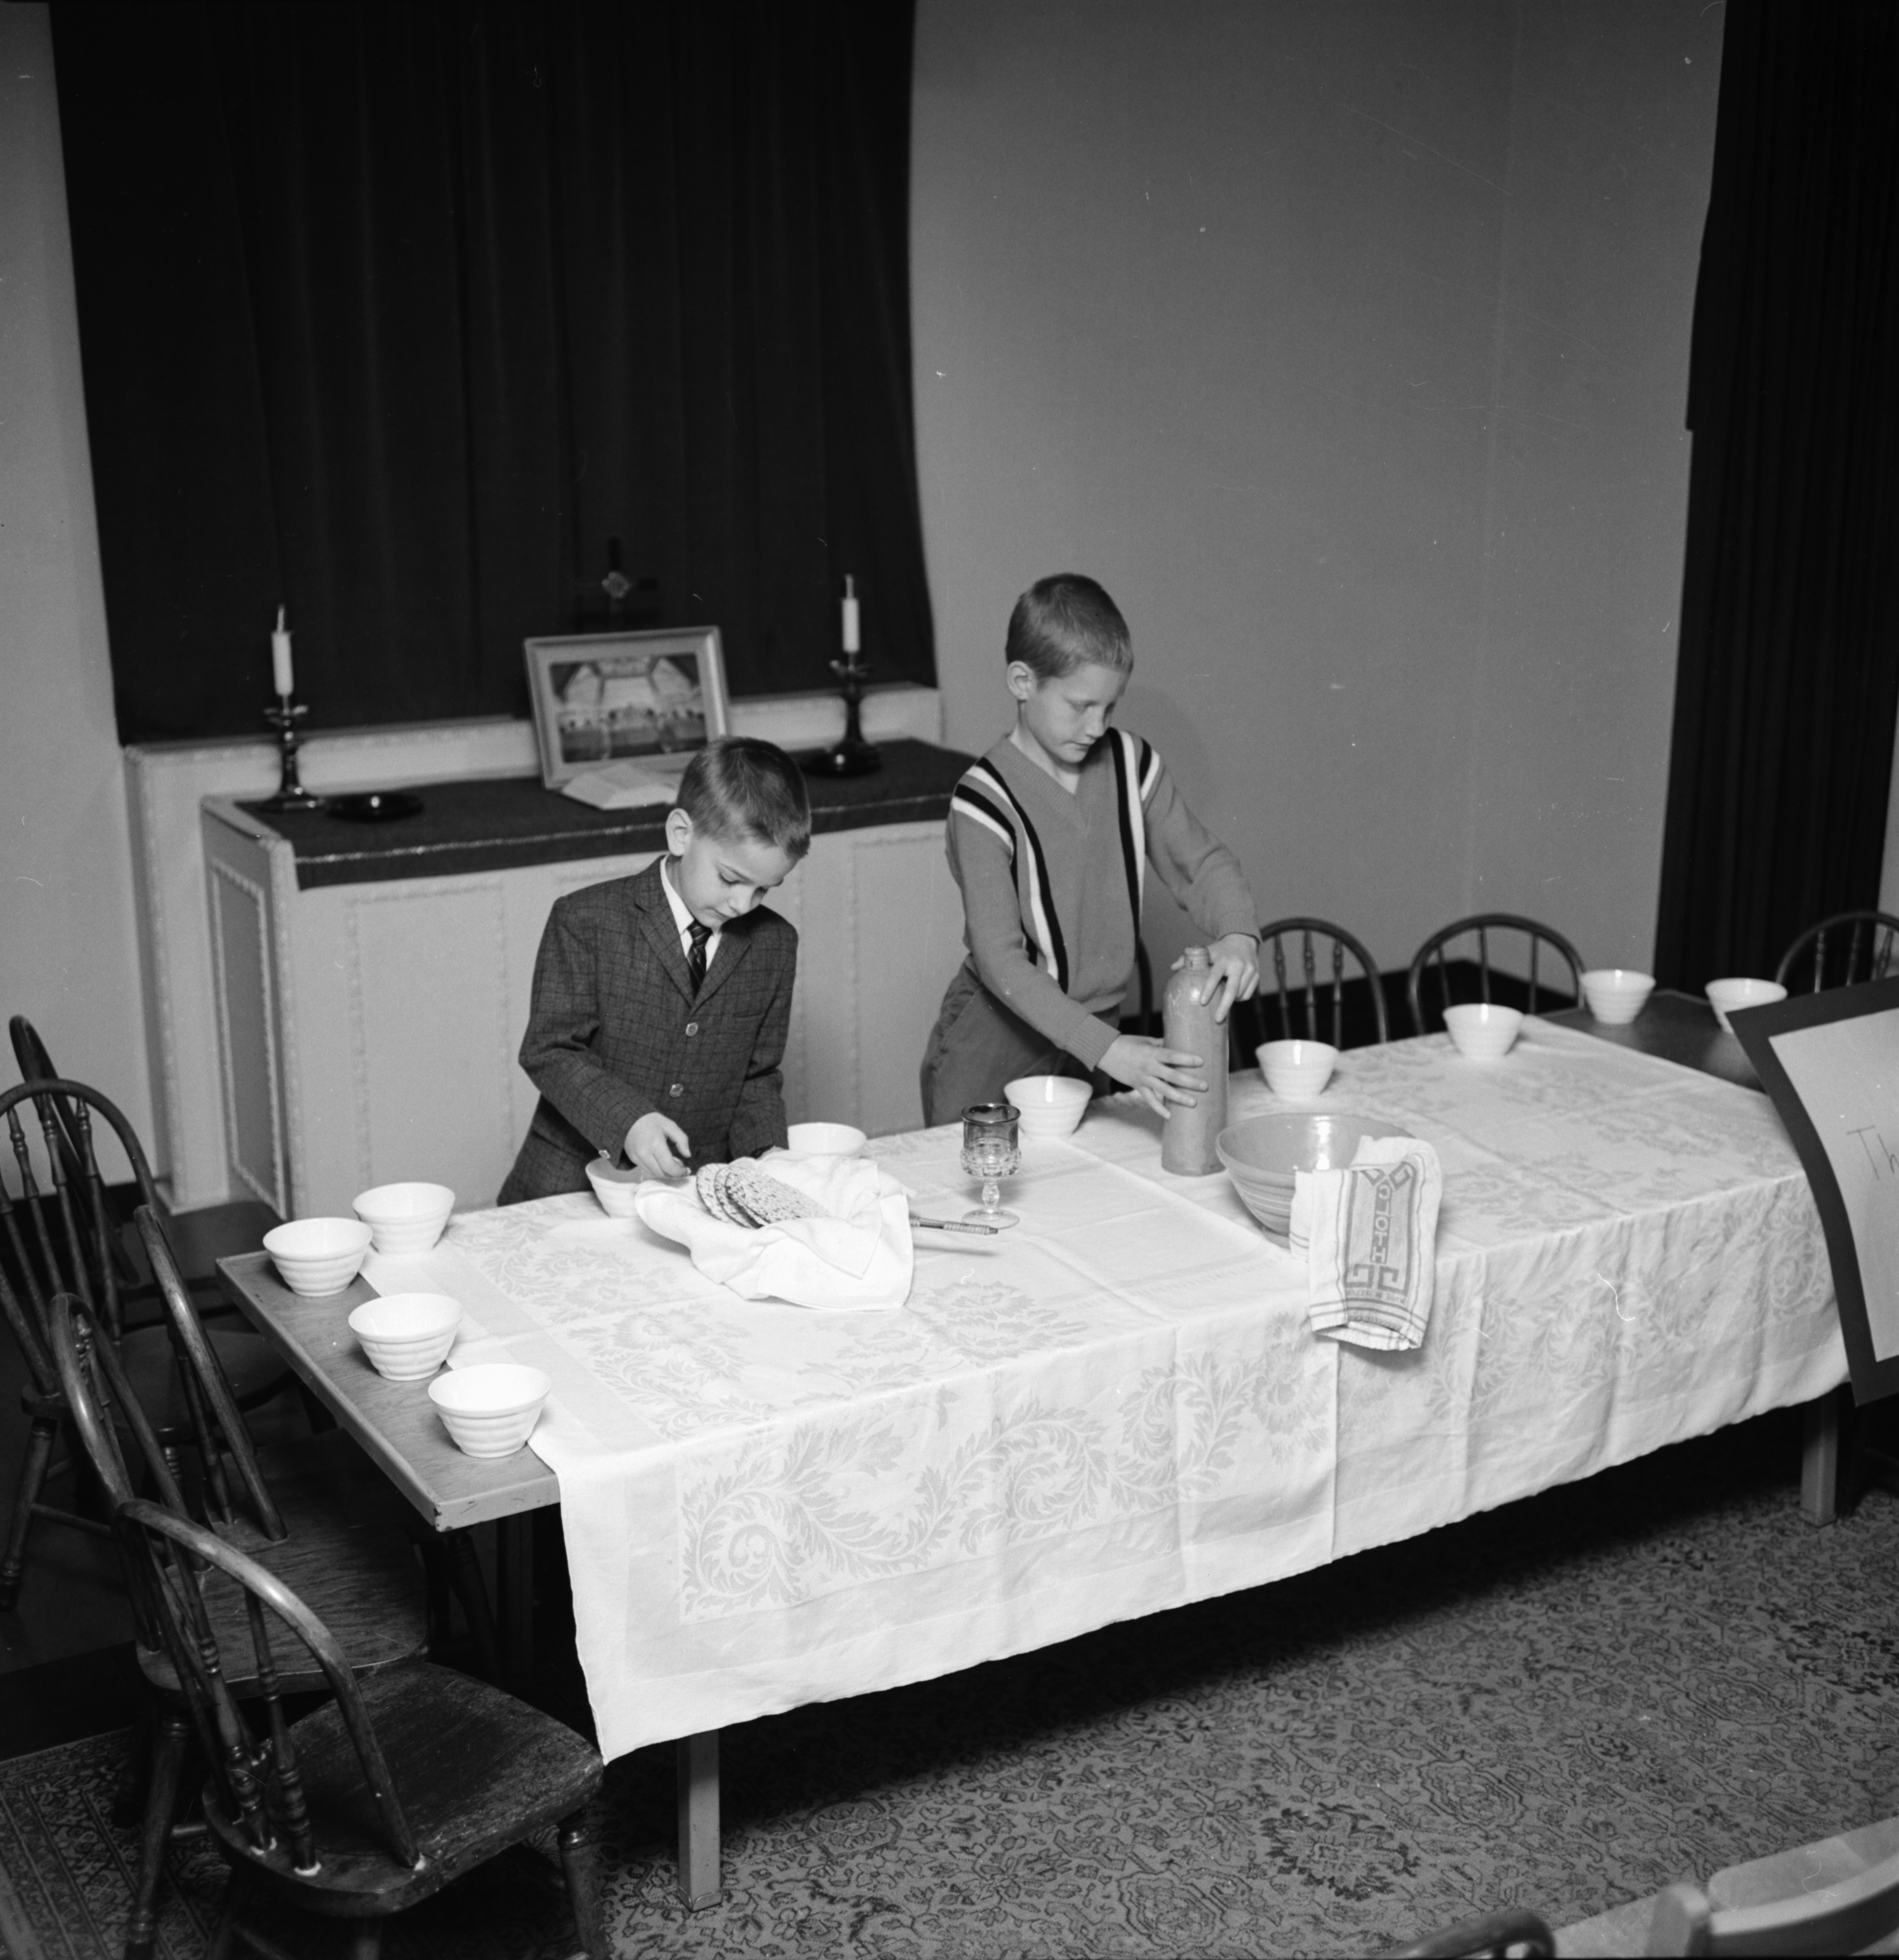 Children at First Congregational Church Set Up Displays, March 1964 image